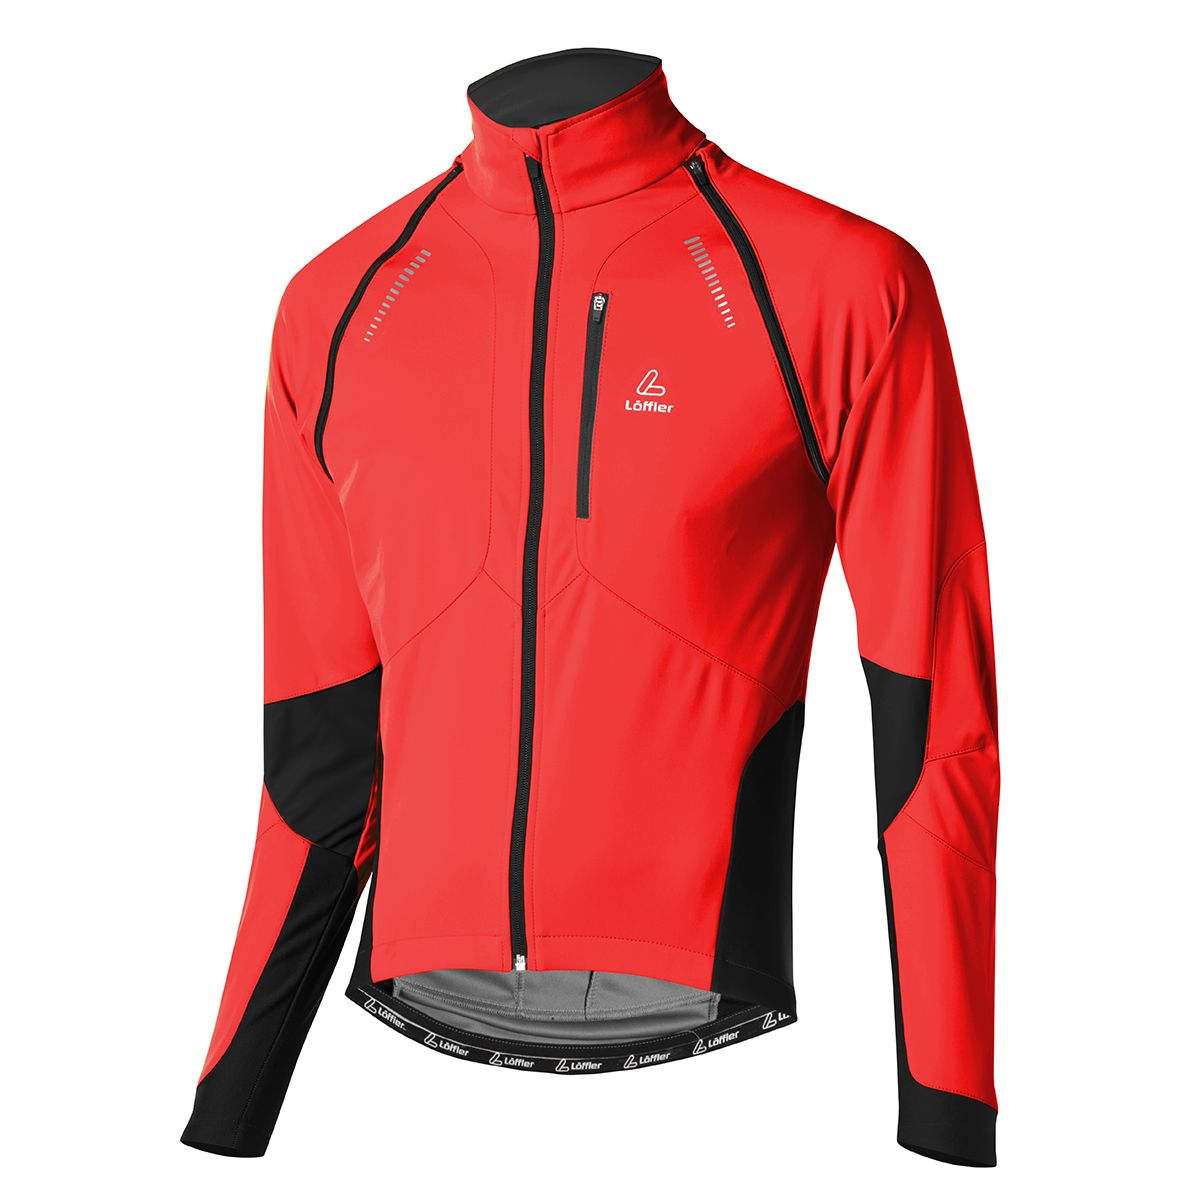 M BIKE ZIP-OFF JACKET SAN REMO WS LIGHT softshell jacket